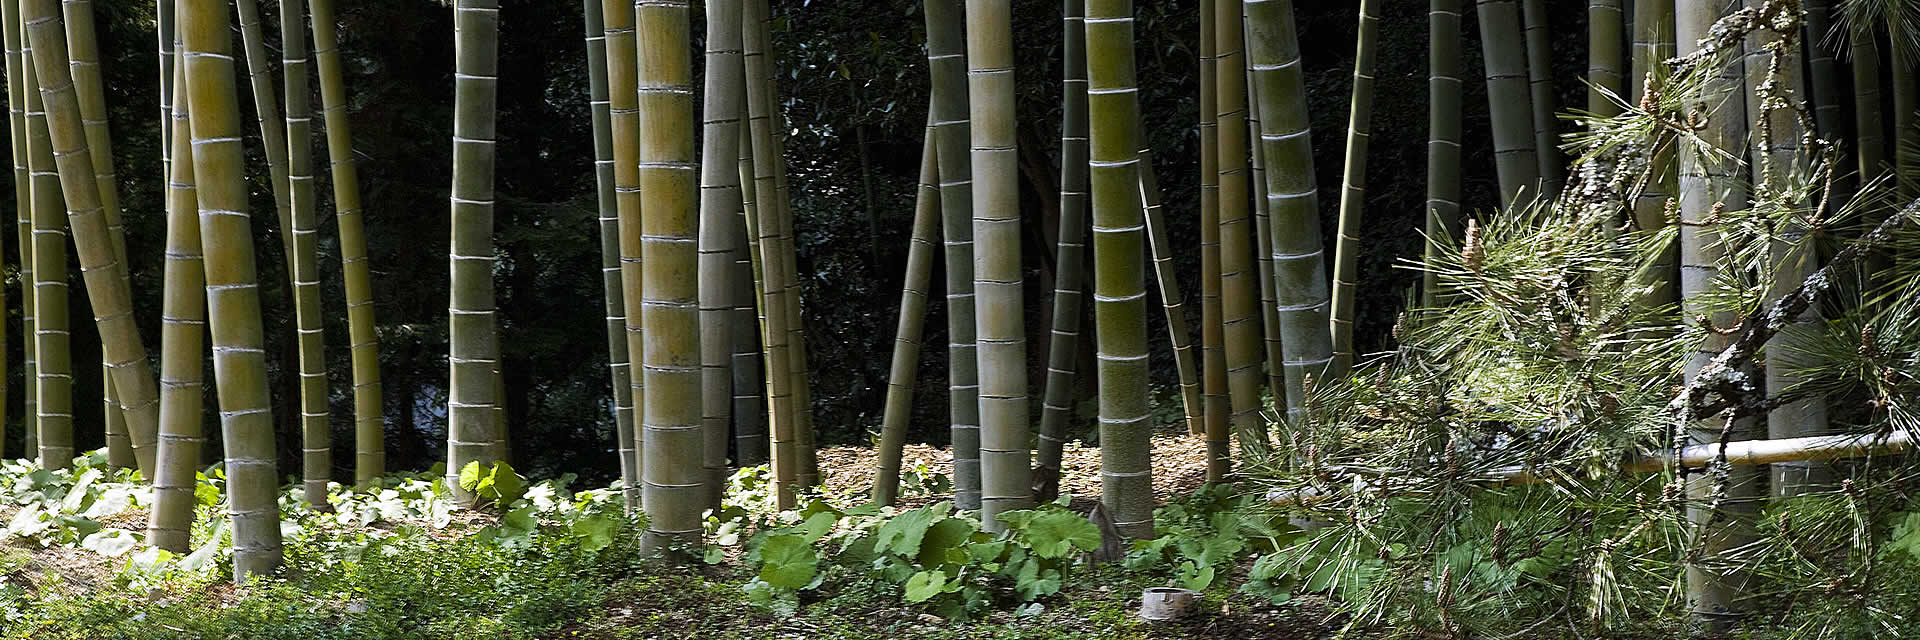 holly-forsyth-bamboo-forest